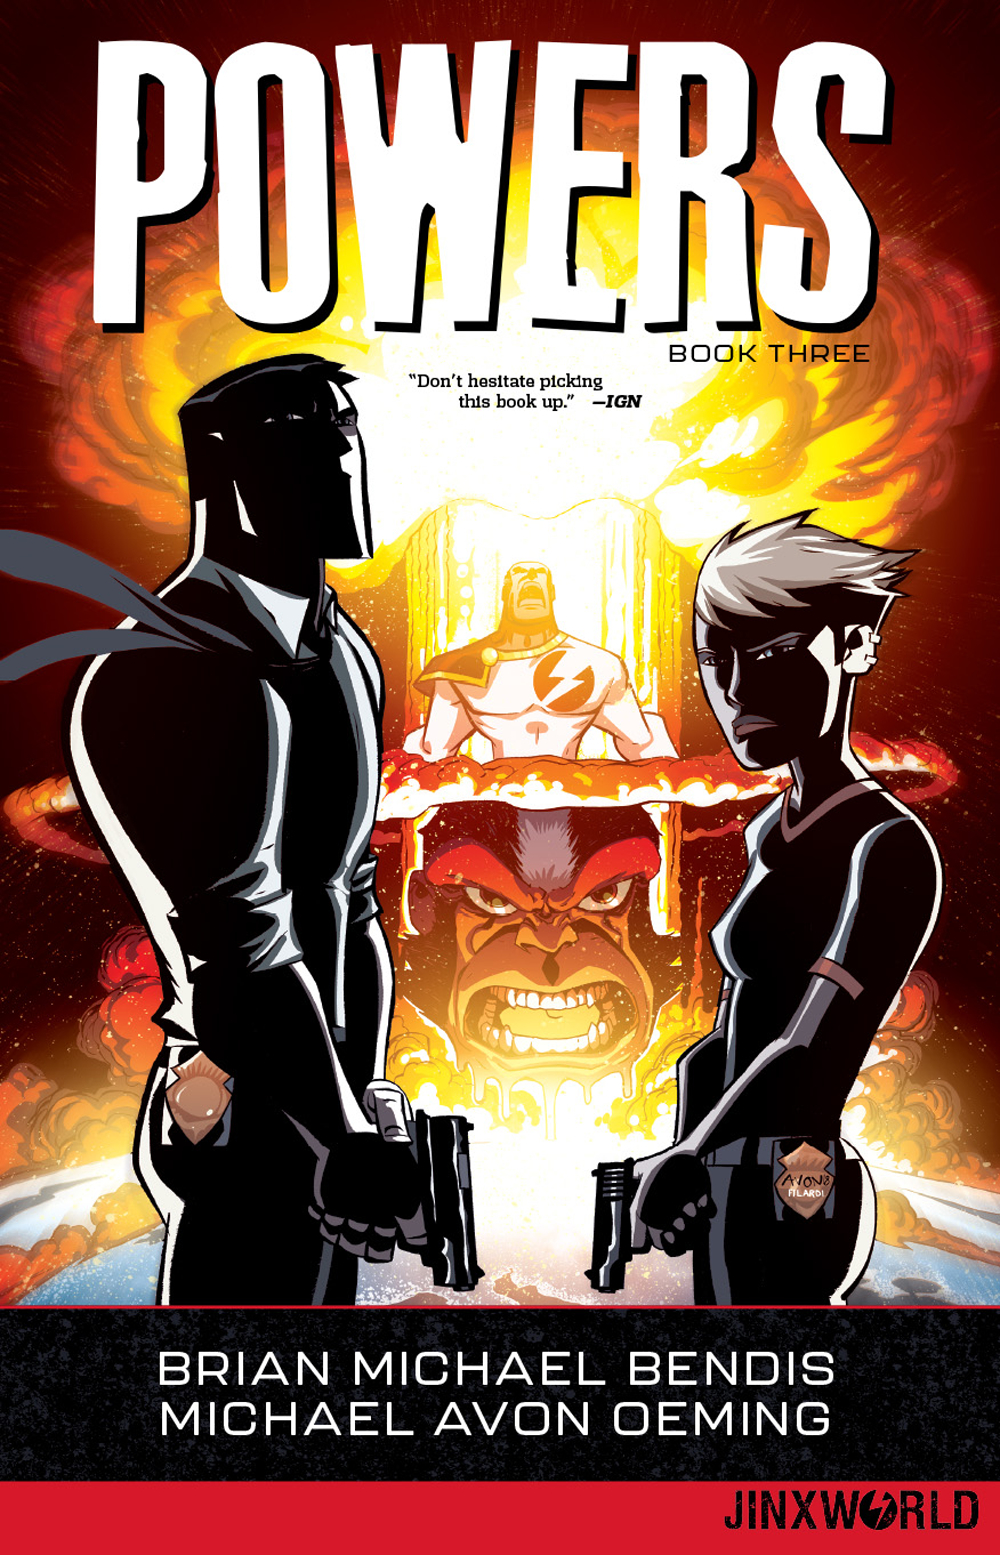 POWERS TP BOOK 03 NEW EDITION (NOV180566) (MR)